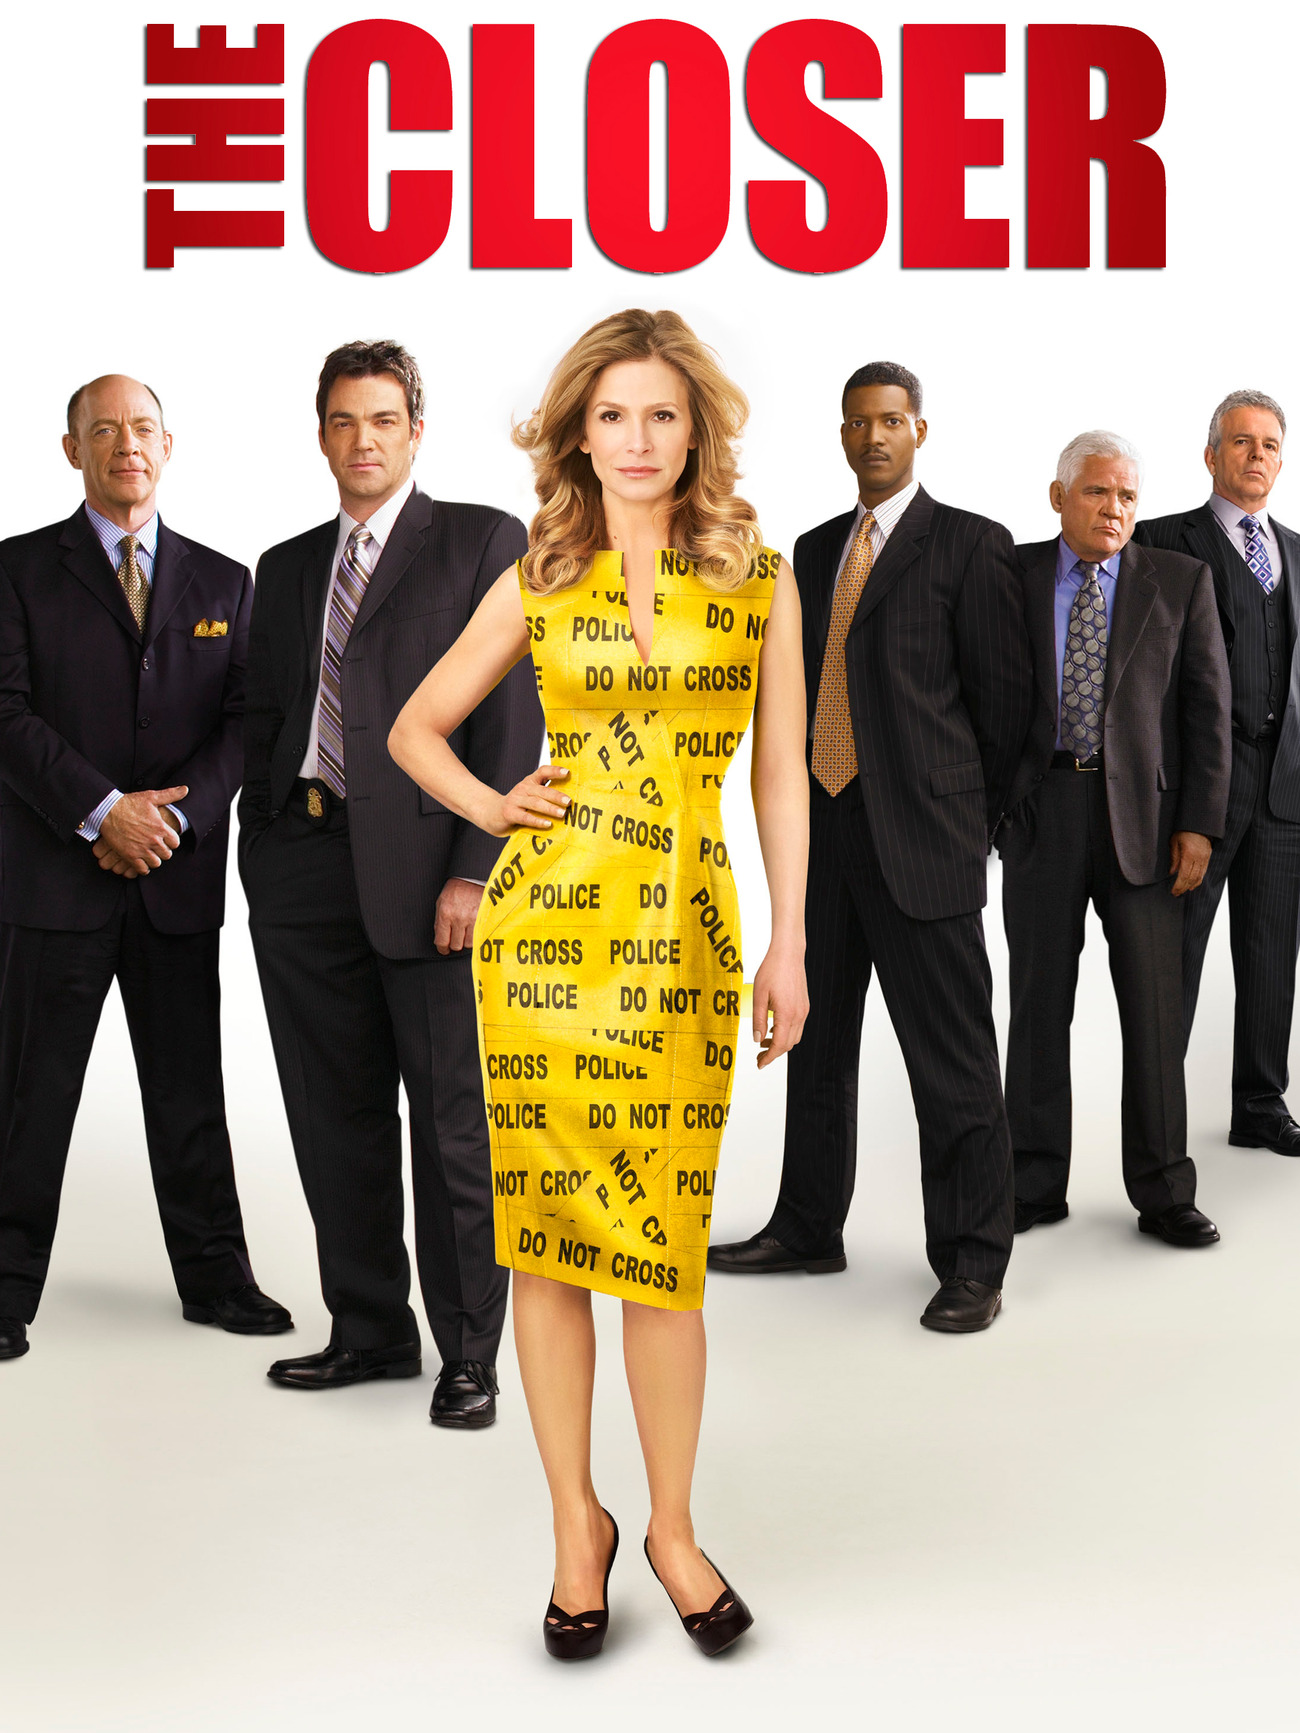 The Closer Season 1 putlocker